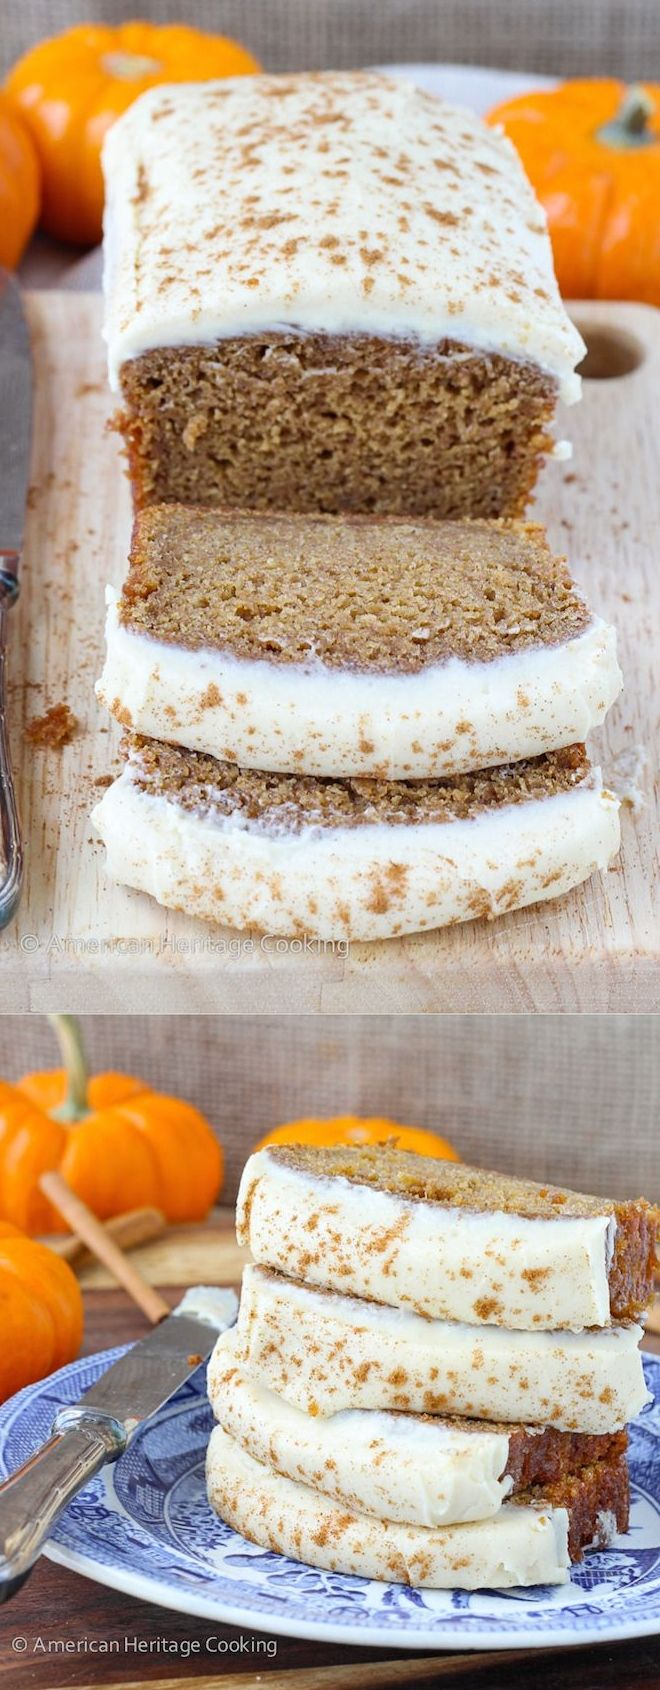 This Healthier Pumpkin Banana Bread is generously spiced and is made using applesauce and spelt flour, and then spread with an addicting Maple Caramel Cream Cheese Icing.